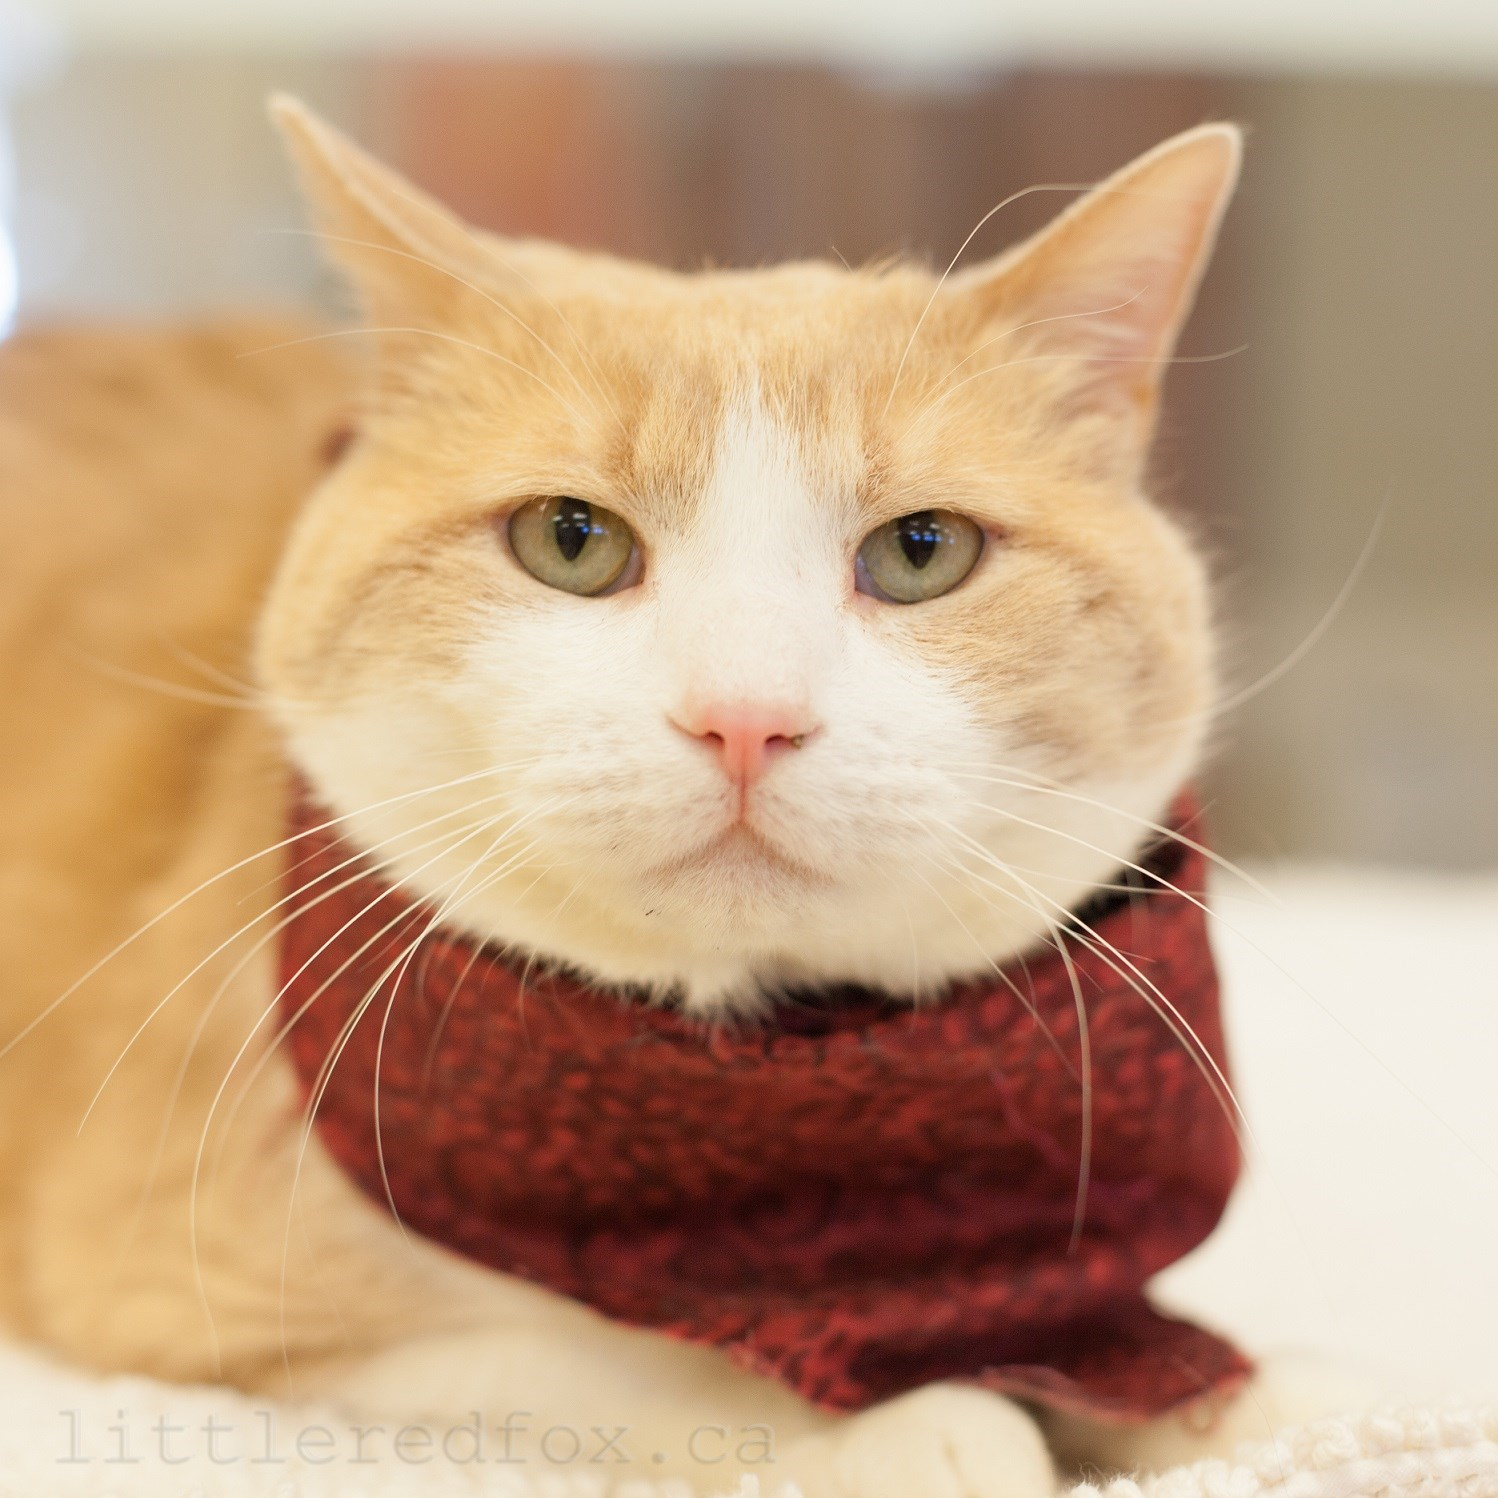 Retirement Colonies Senior Citizens Find A Home Away From: Take Me Home Thursdays: Rescue Animals Of The Week